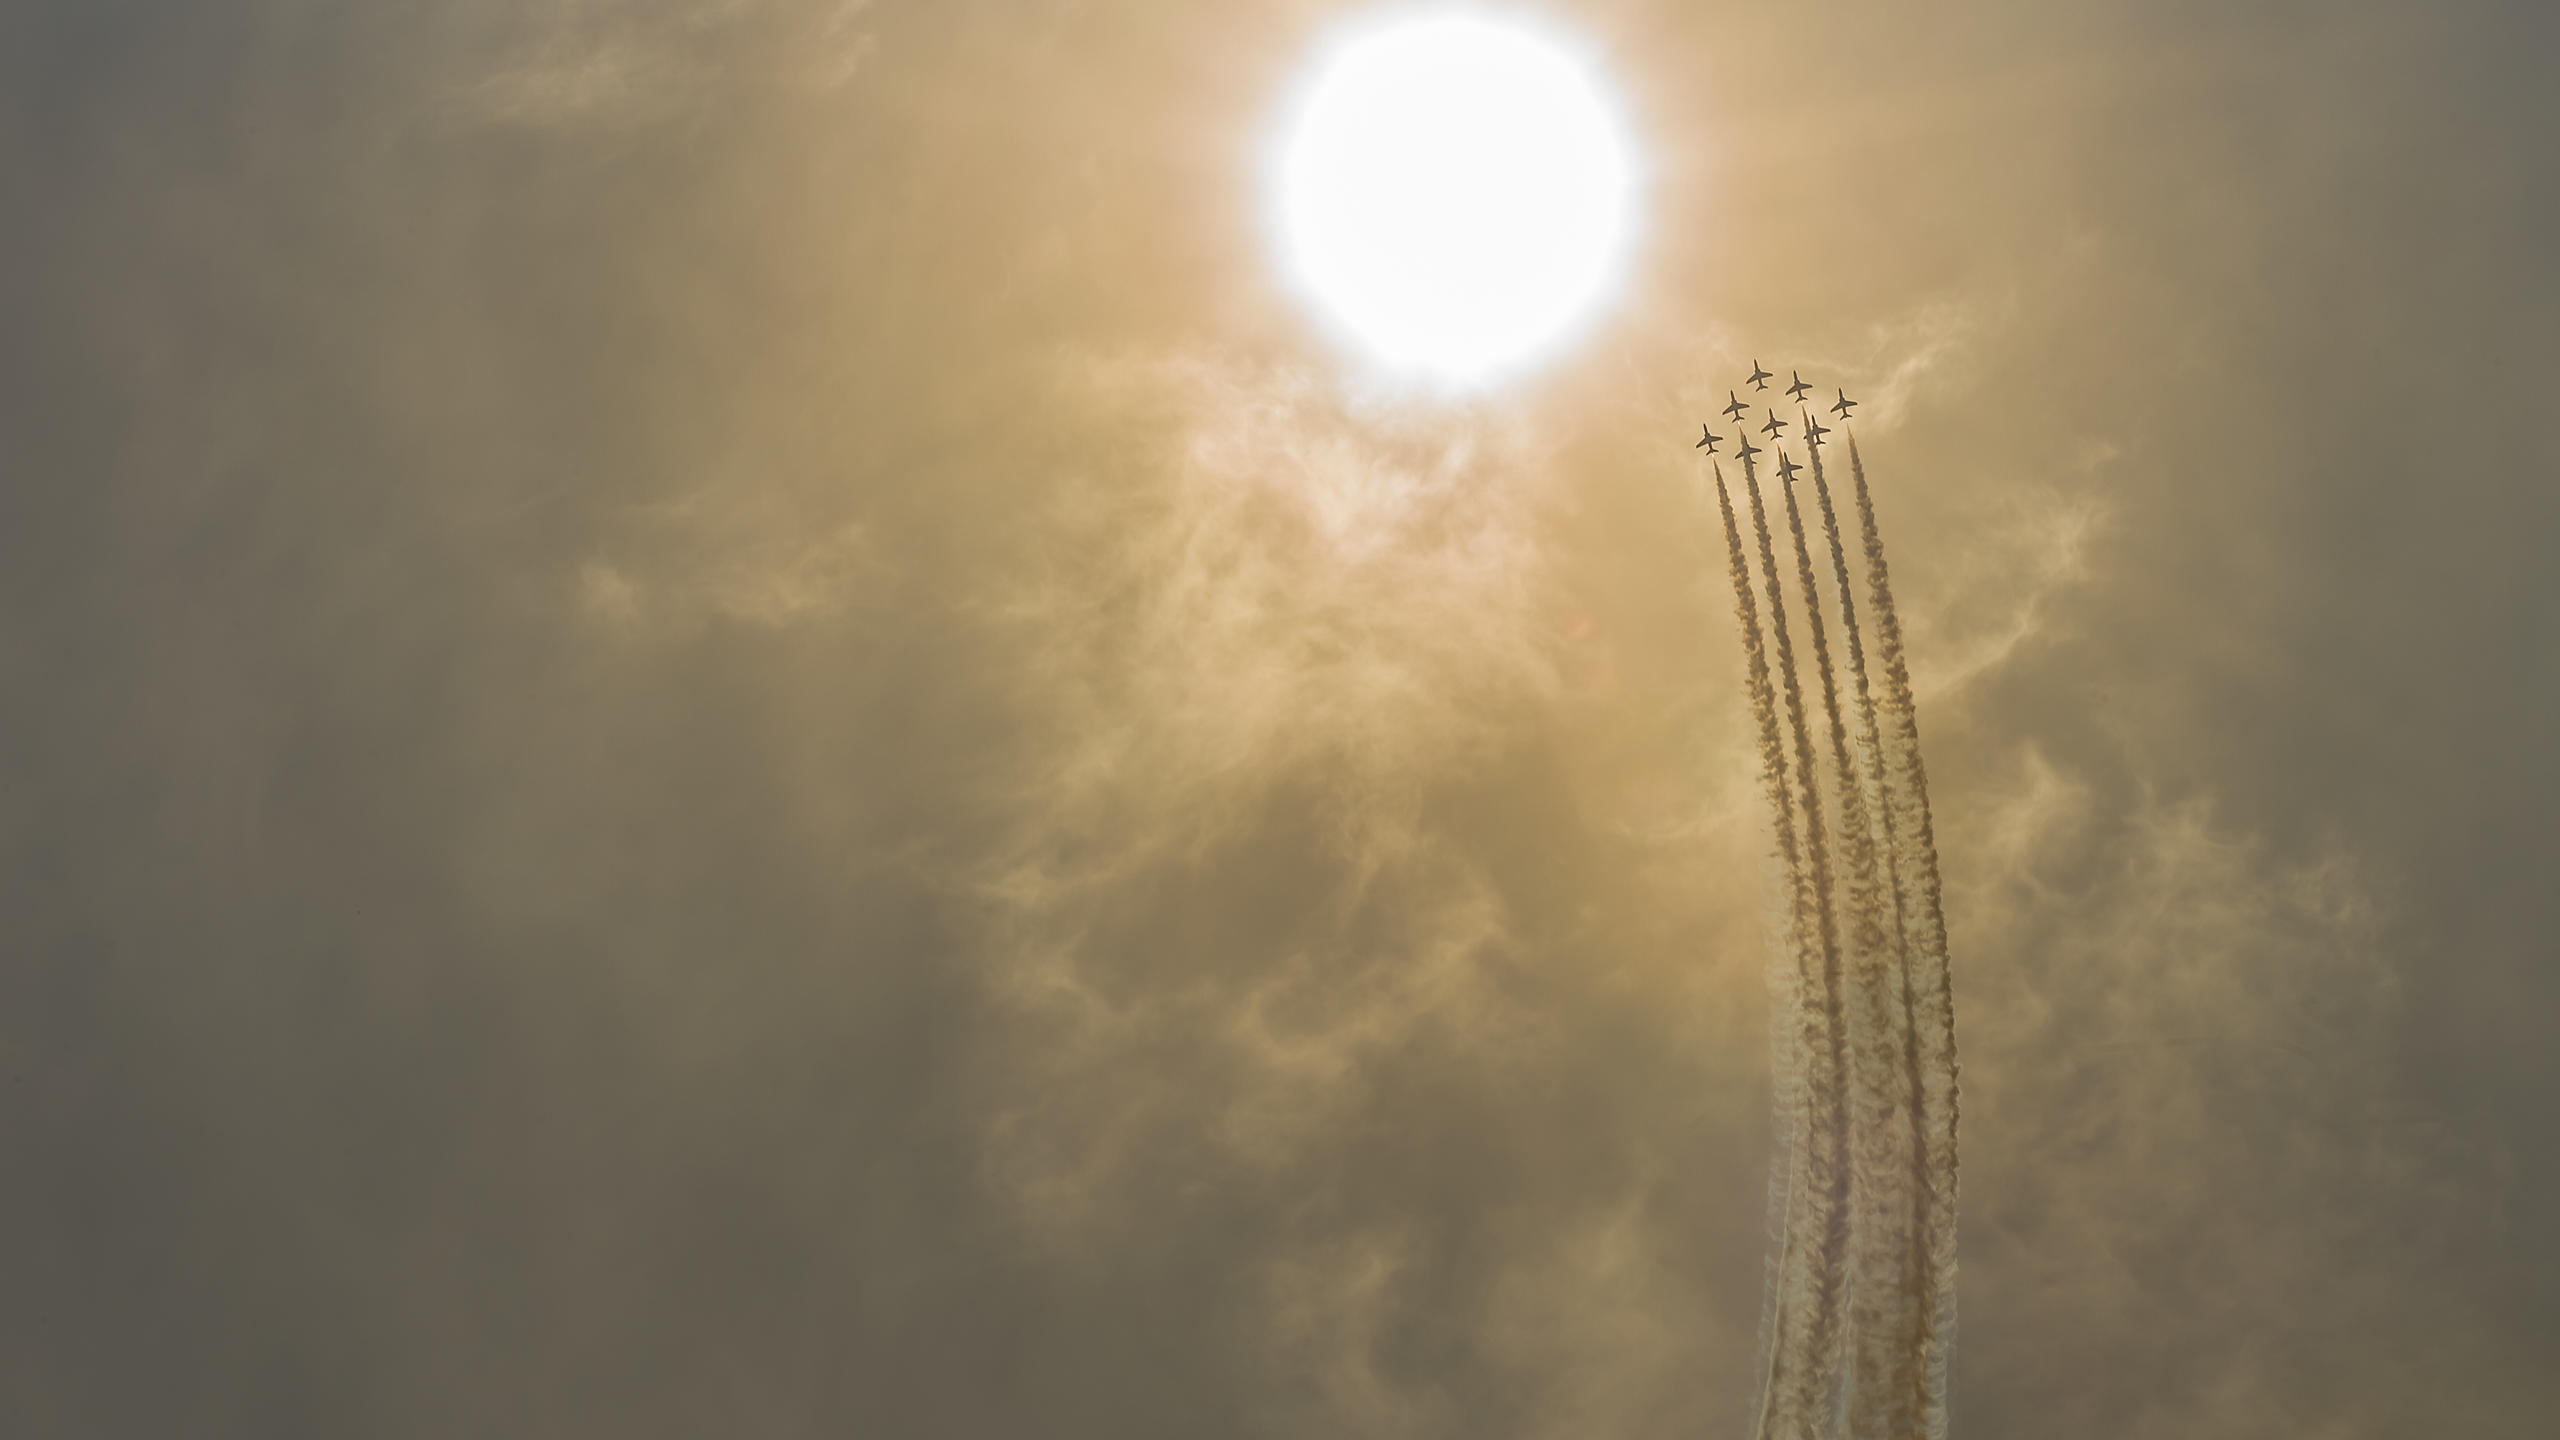 Red Arrows Spectacular Flight Towards the Sun